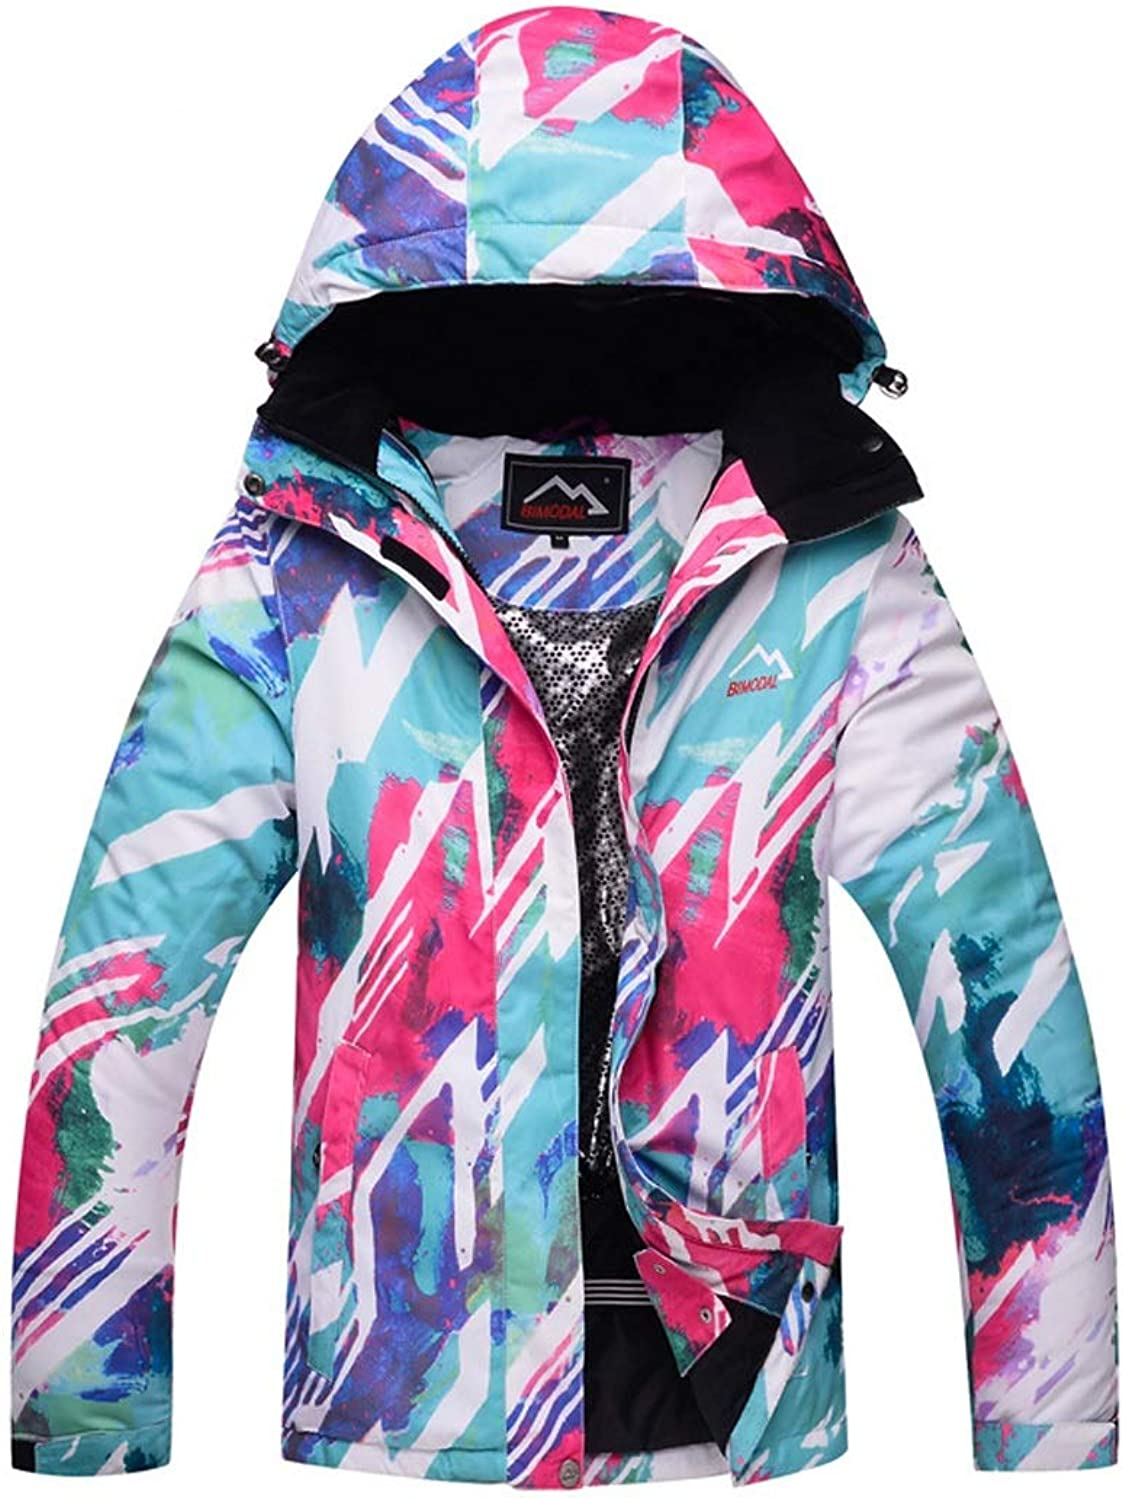 AUSWIEI Women's Windproof Ski Jacket Outdoor Warm Snowboard